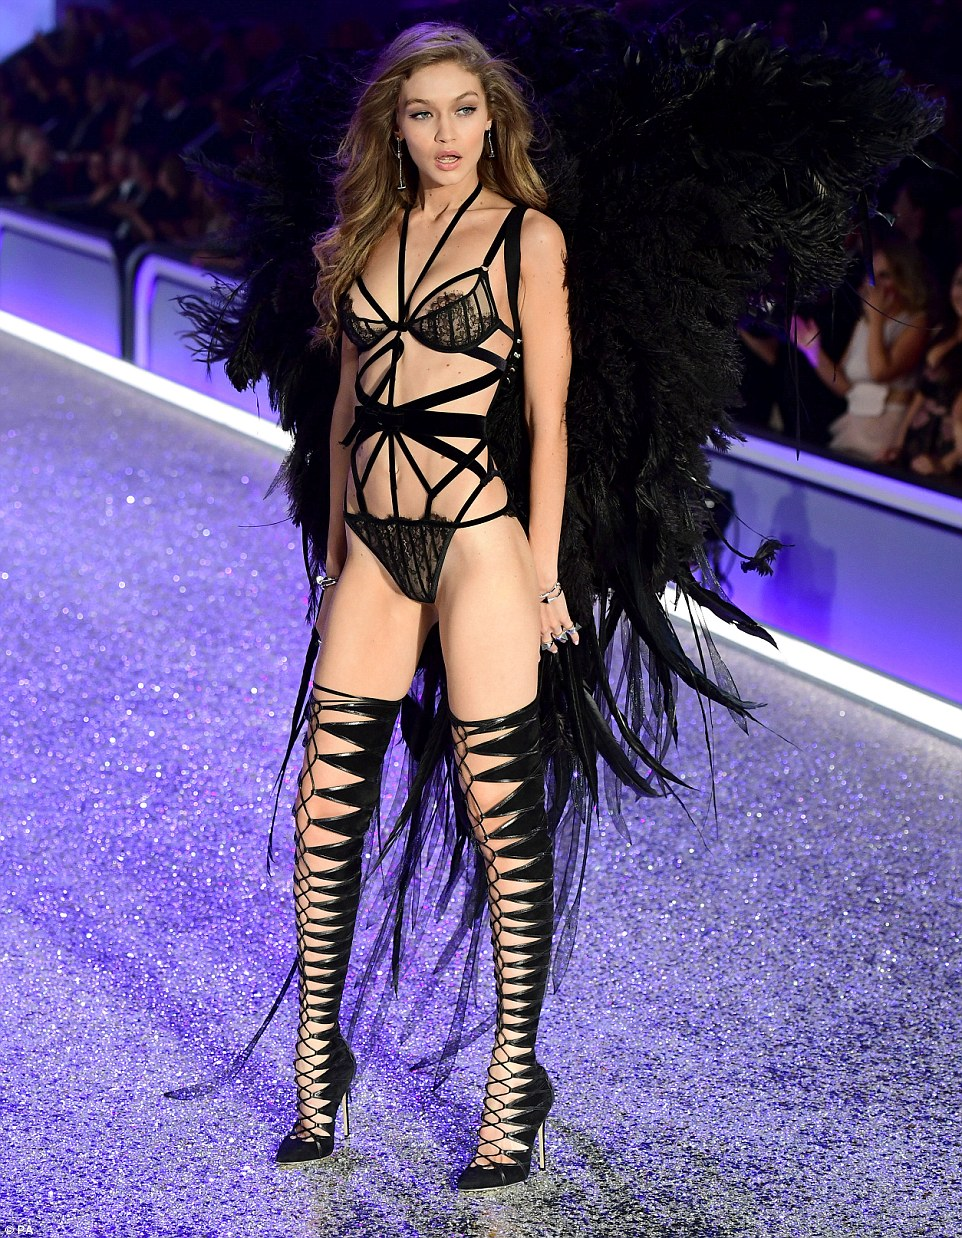 Victoria's Secret Fashion Show in Paris